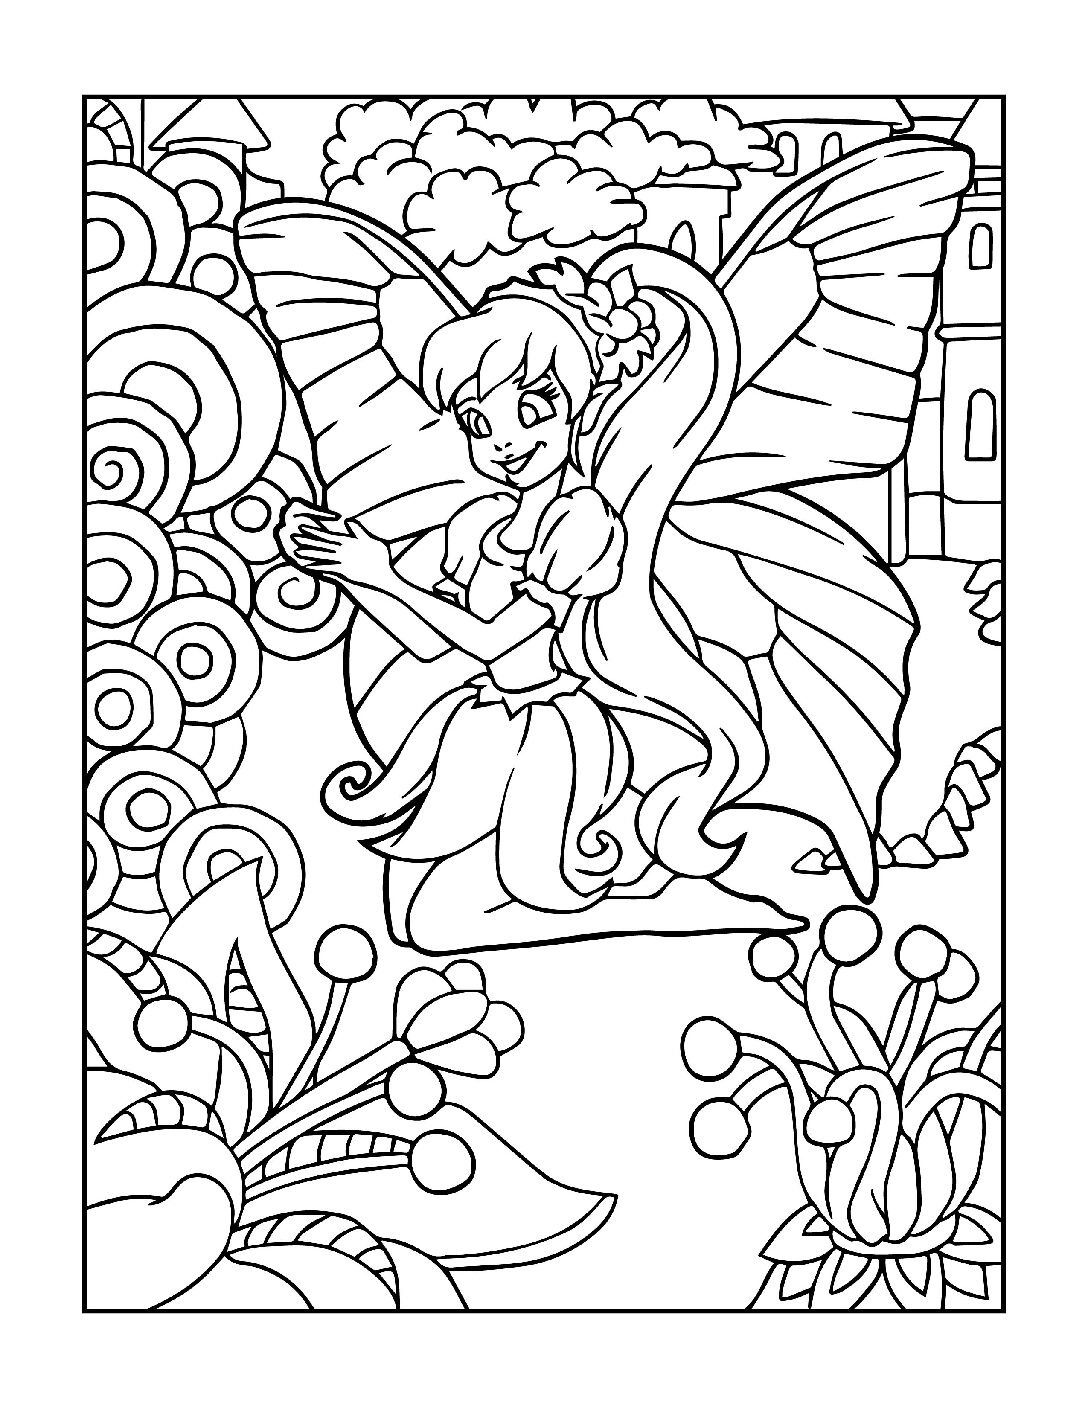 Coloring-Pages-Fairies-2-01-pdf Free Printable Fairy Colouring Pages